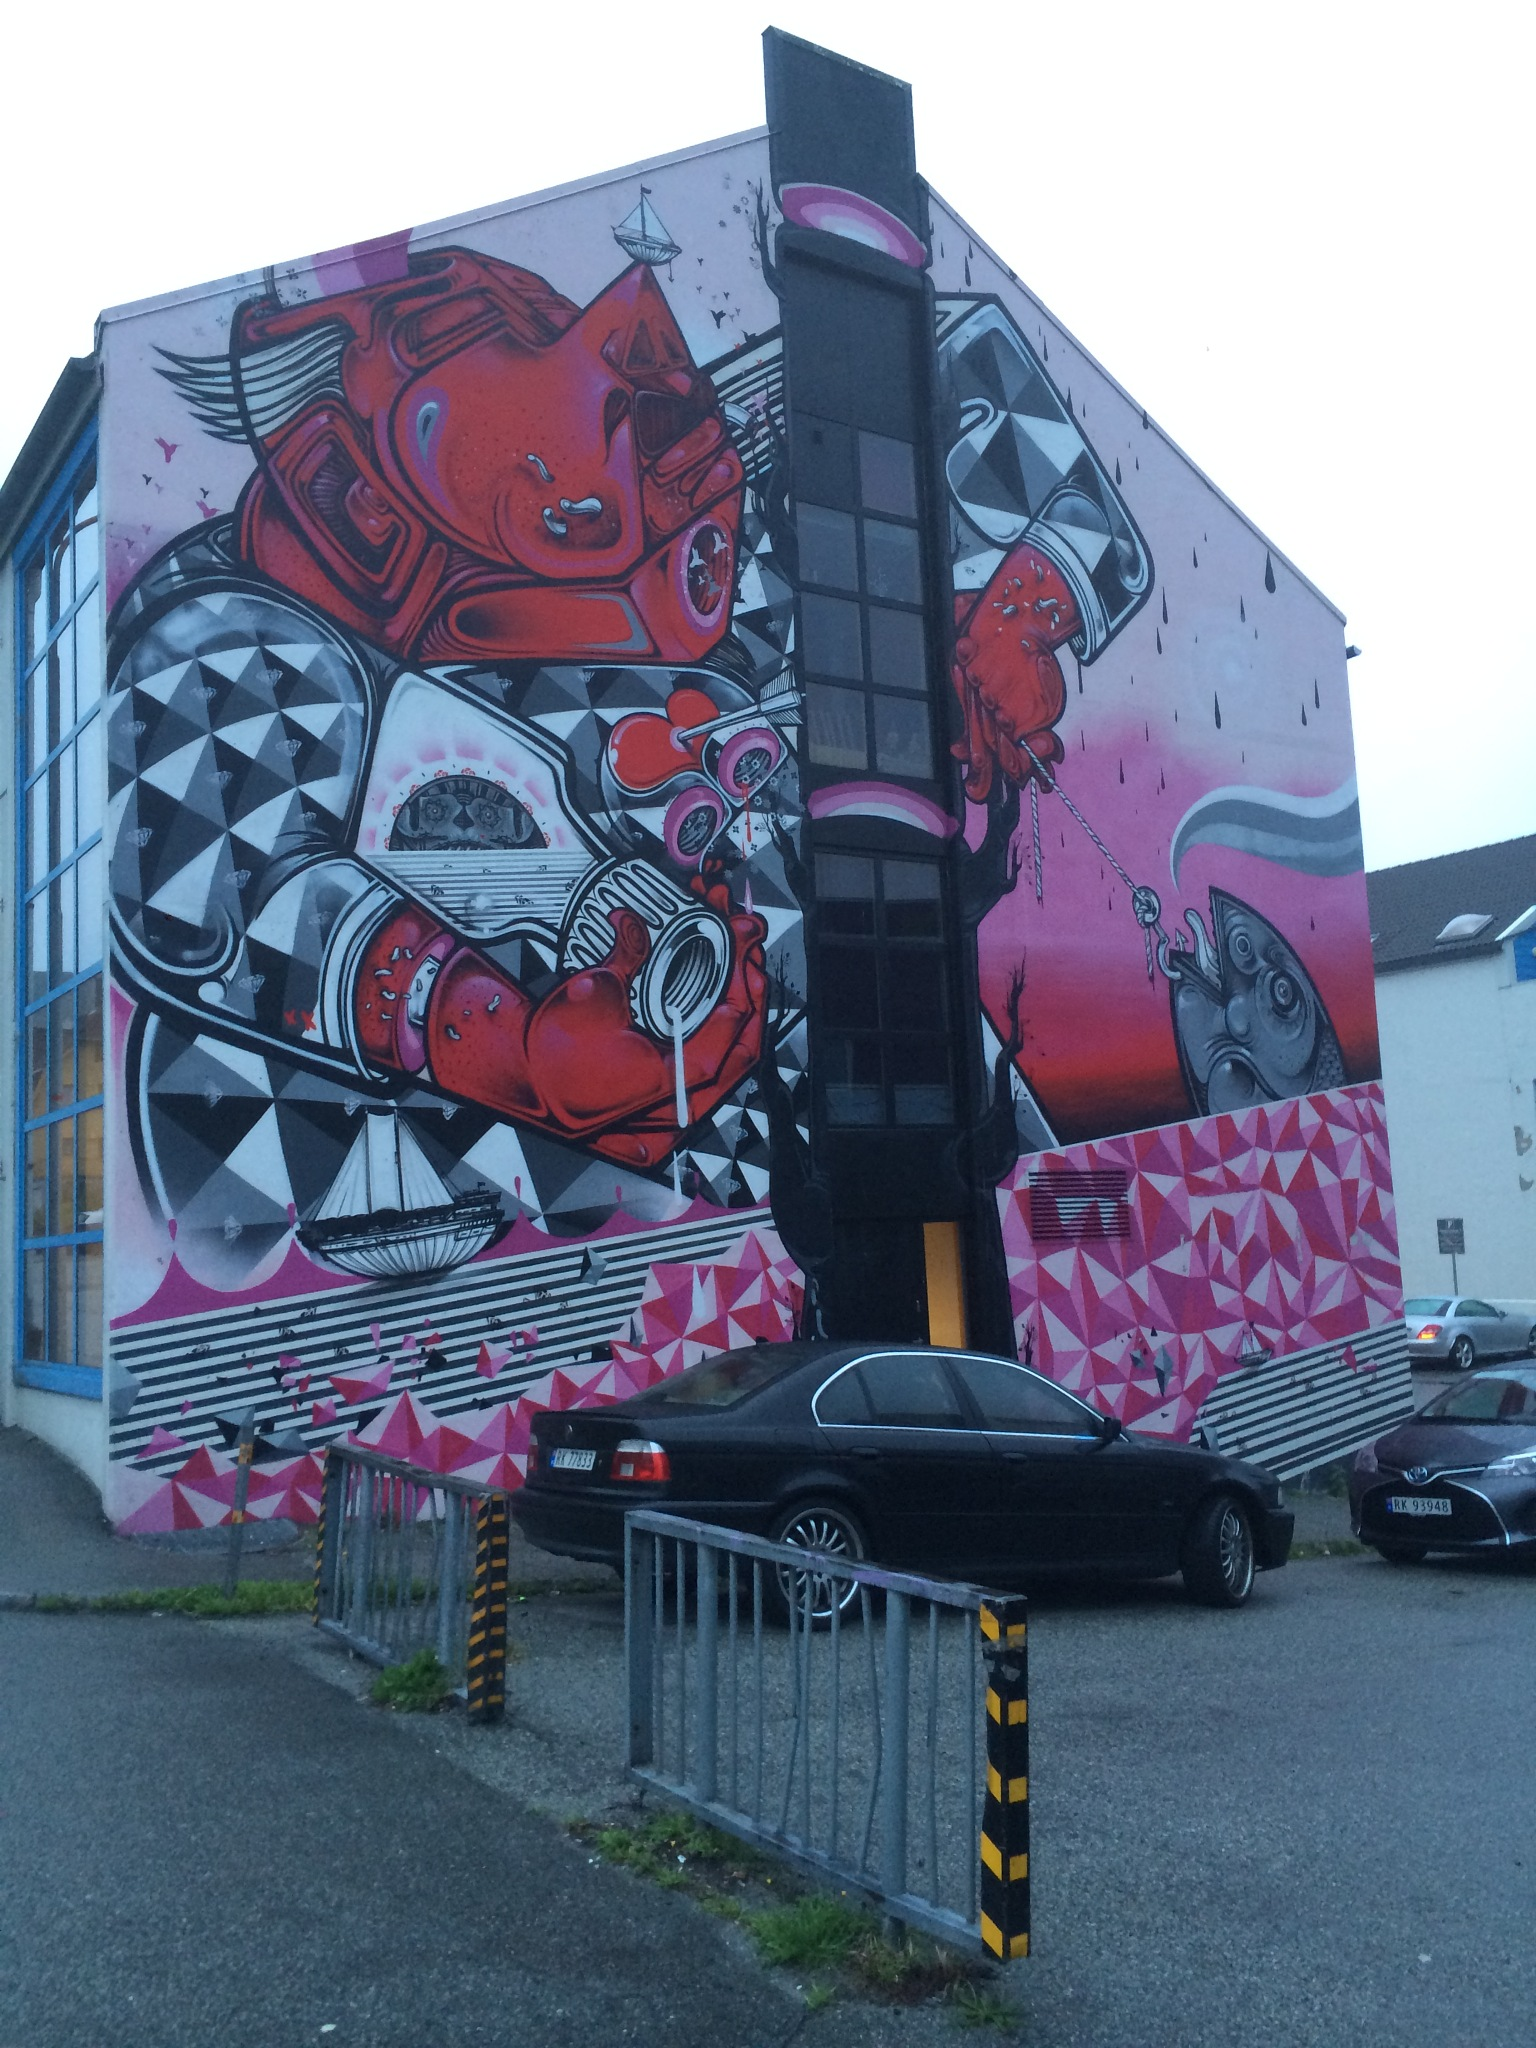 Streetart in Stavanger by christinanature